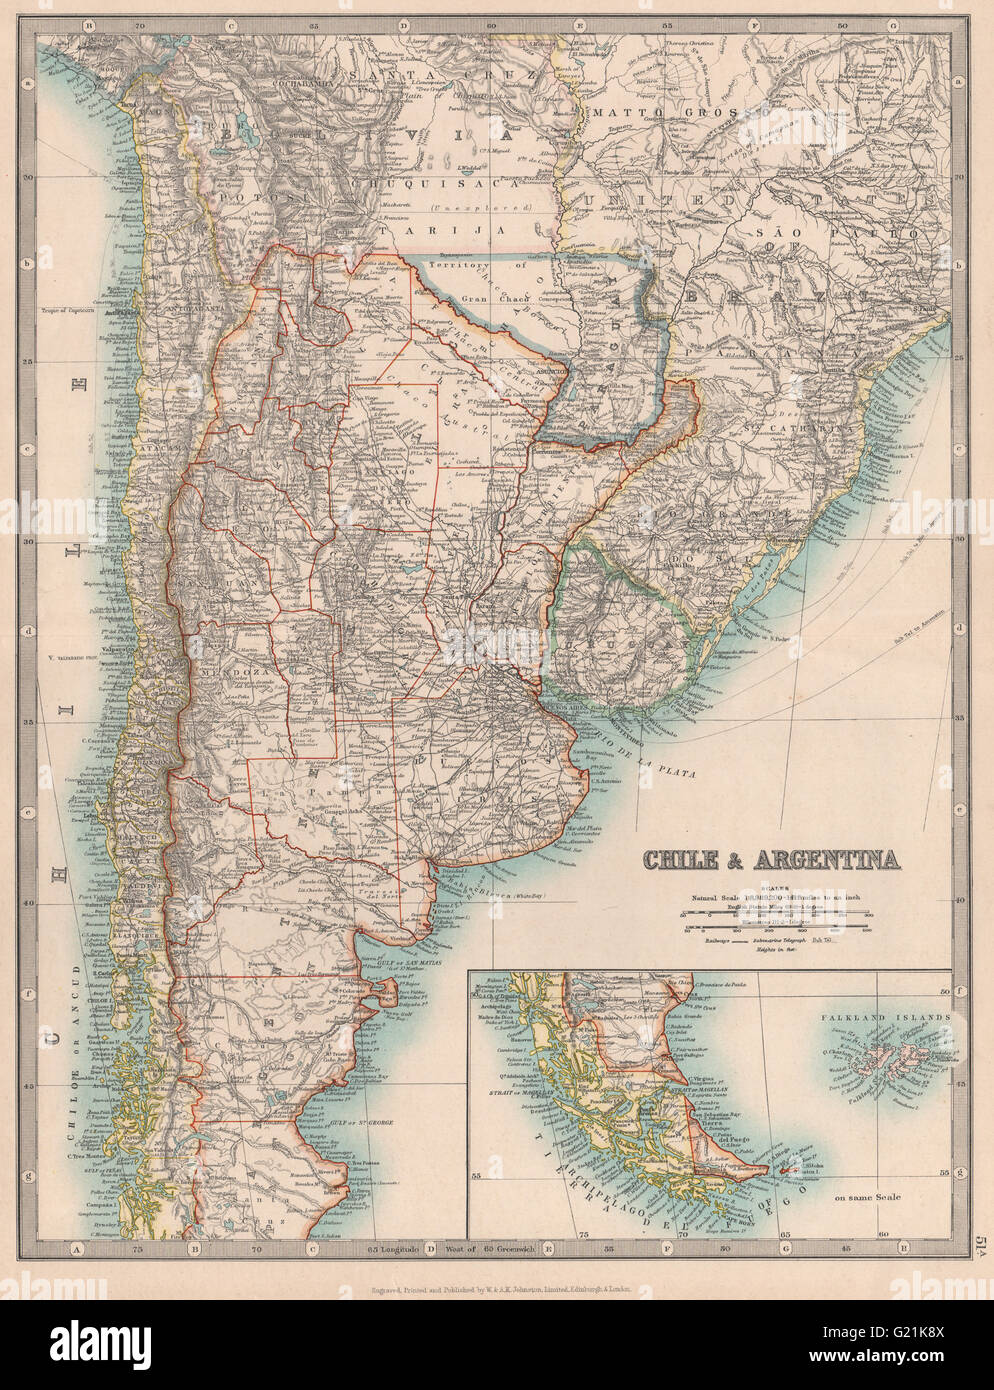 Chaco map stock photos chaco map stock images alamy chile argentina paraguay including gran chaco uruguay johnston 1912 map gumiabroncs Image collections